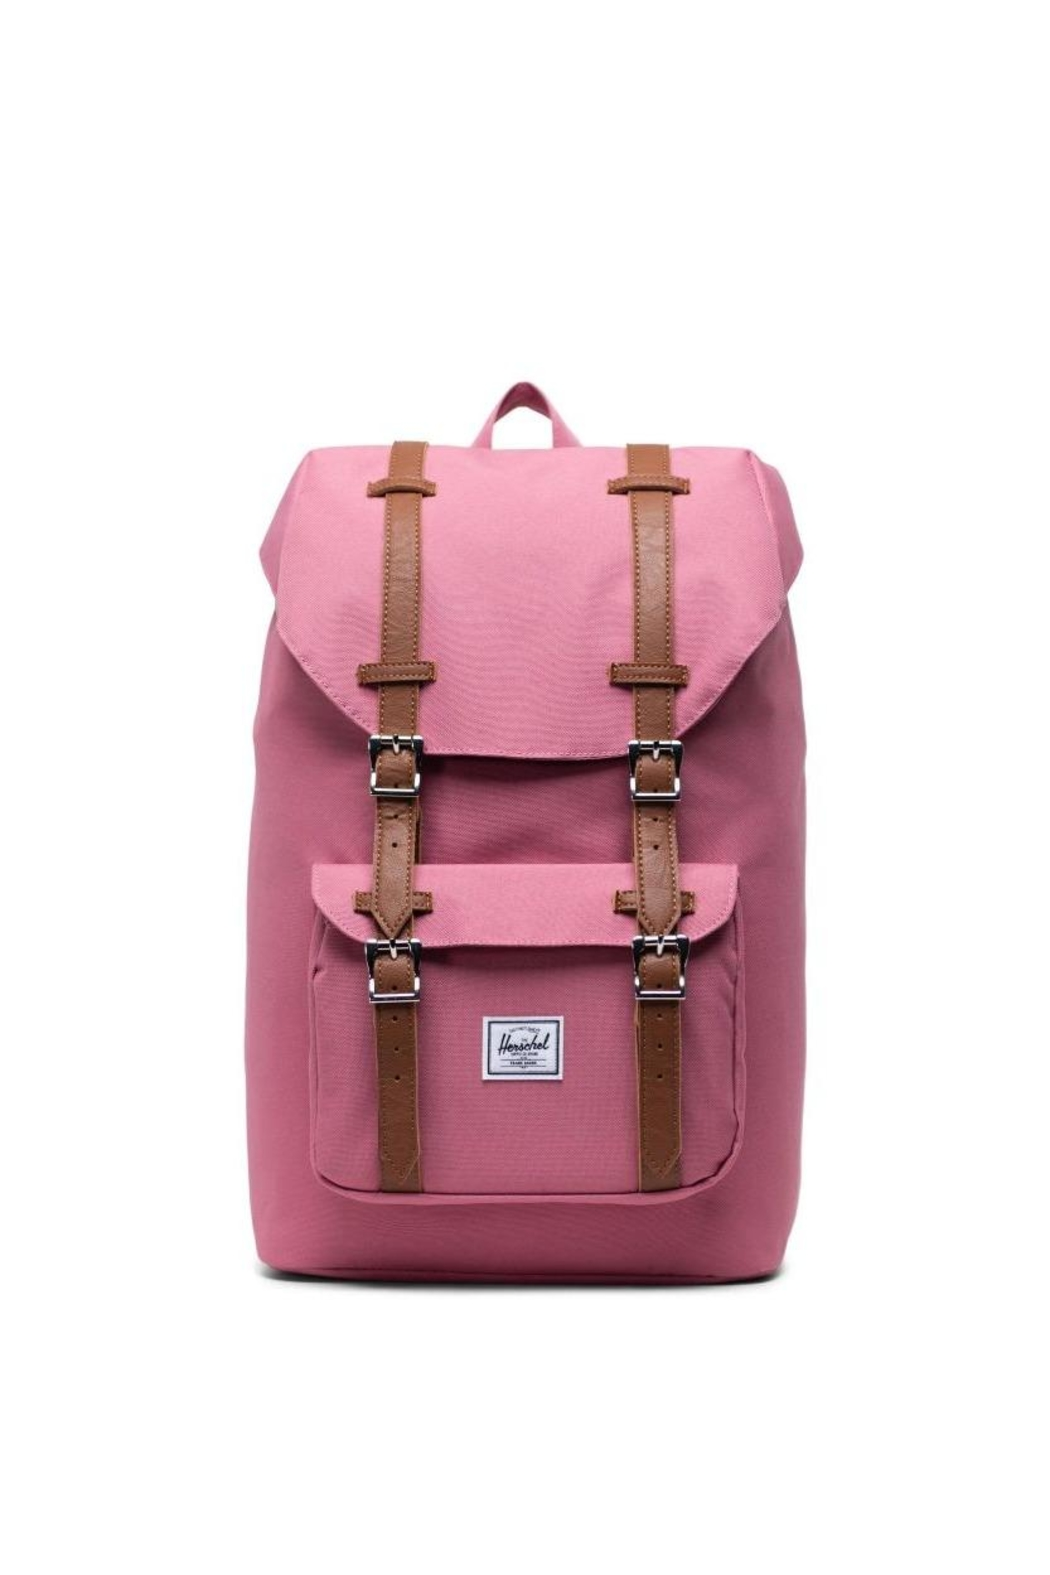 Herschel Supply Co. Mid-Sized Pink Backpack - Main Image